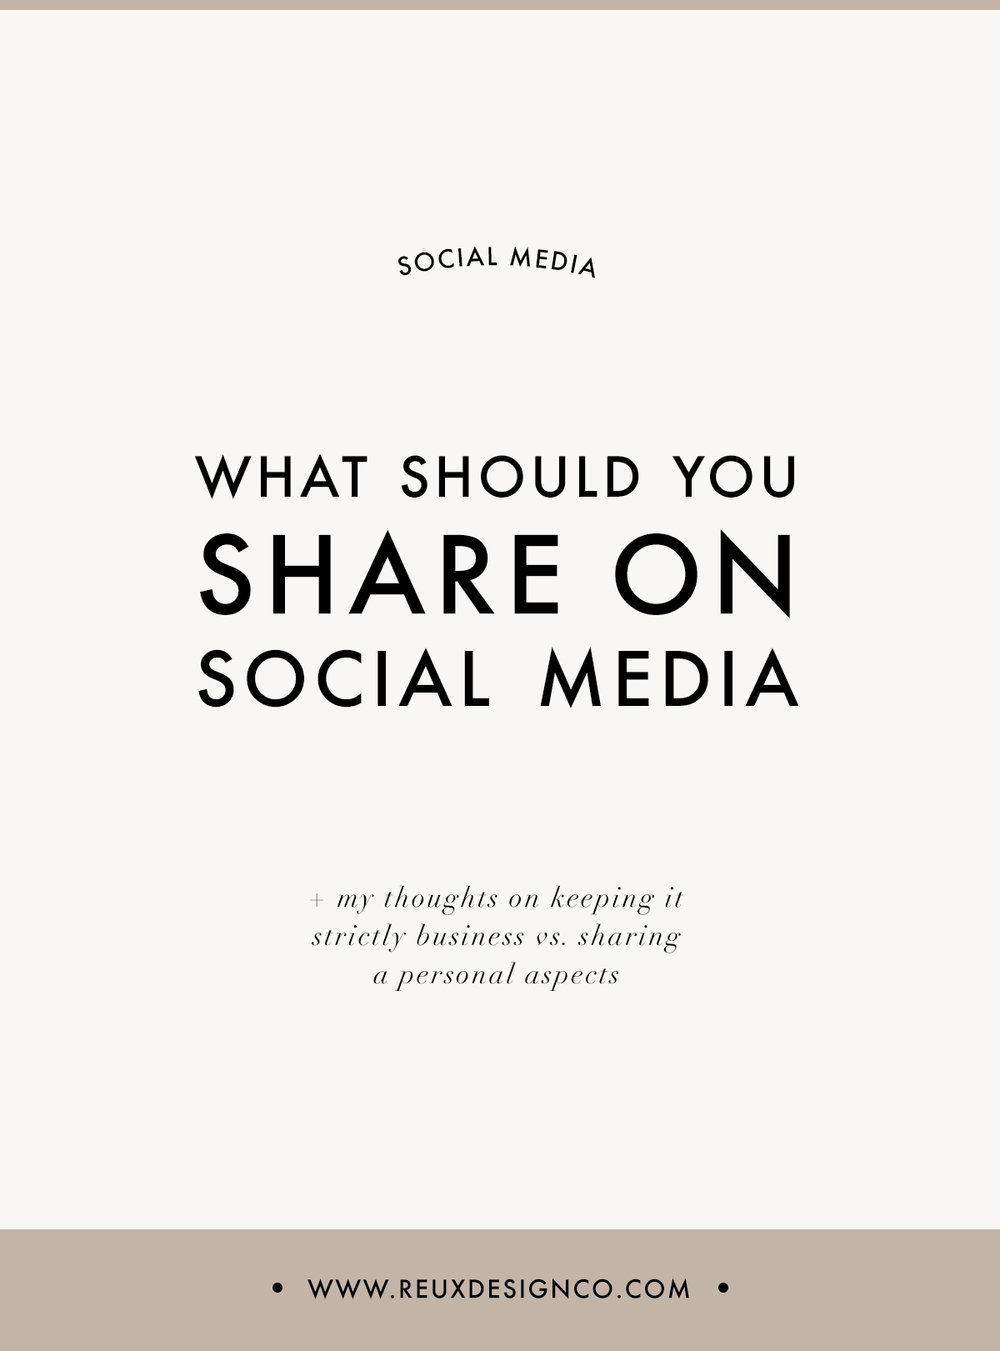 how to share content on social media | Reux Design Co.